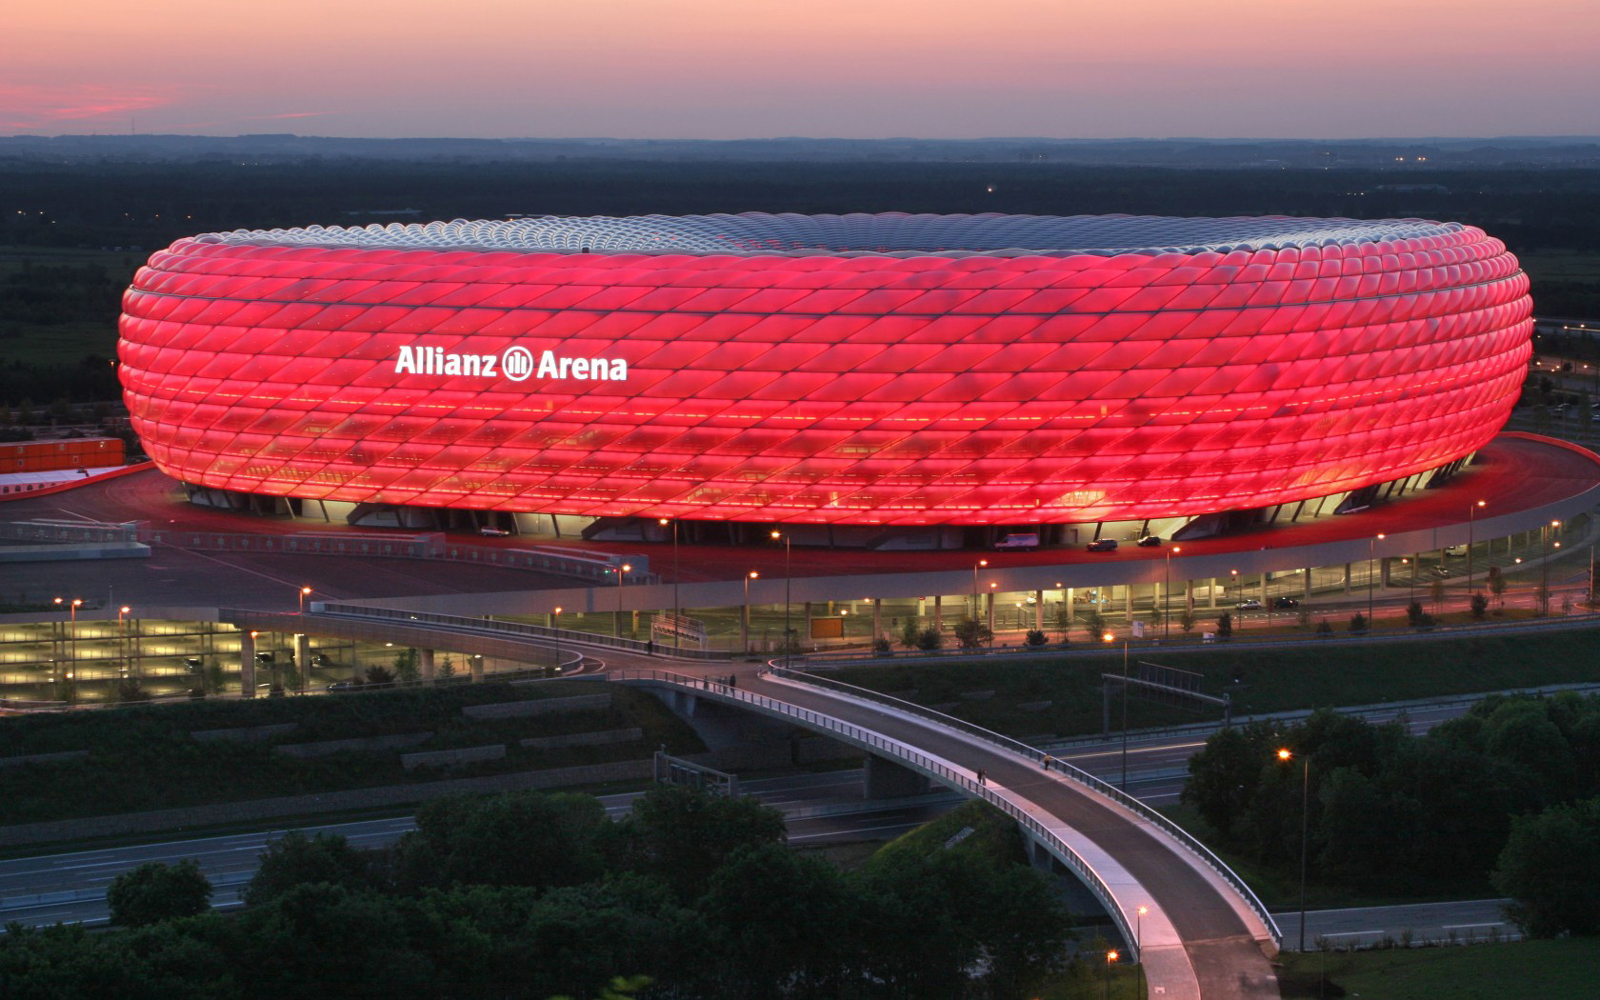 http://3.bp.blogspot.com/-w--z1VpinUI/UPgxJMaIkpI/AAAAAAAAKAI/dwFCFi8M7UQ/s1600/Allianz_Arena_Football_Stadium_2013_Bayern_Munich_Germany_Hd_Desktop_Wallpaper_citiesandteams.blogspot.com.jpg